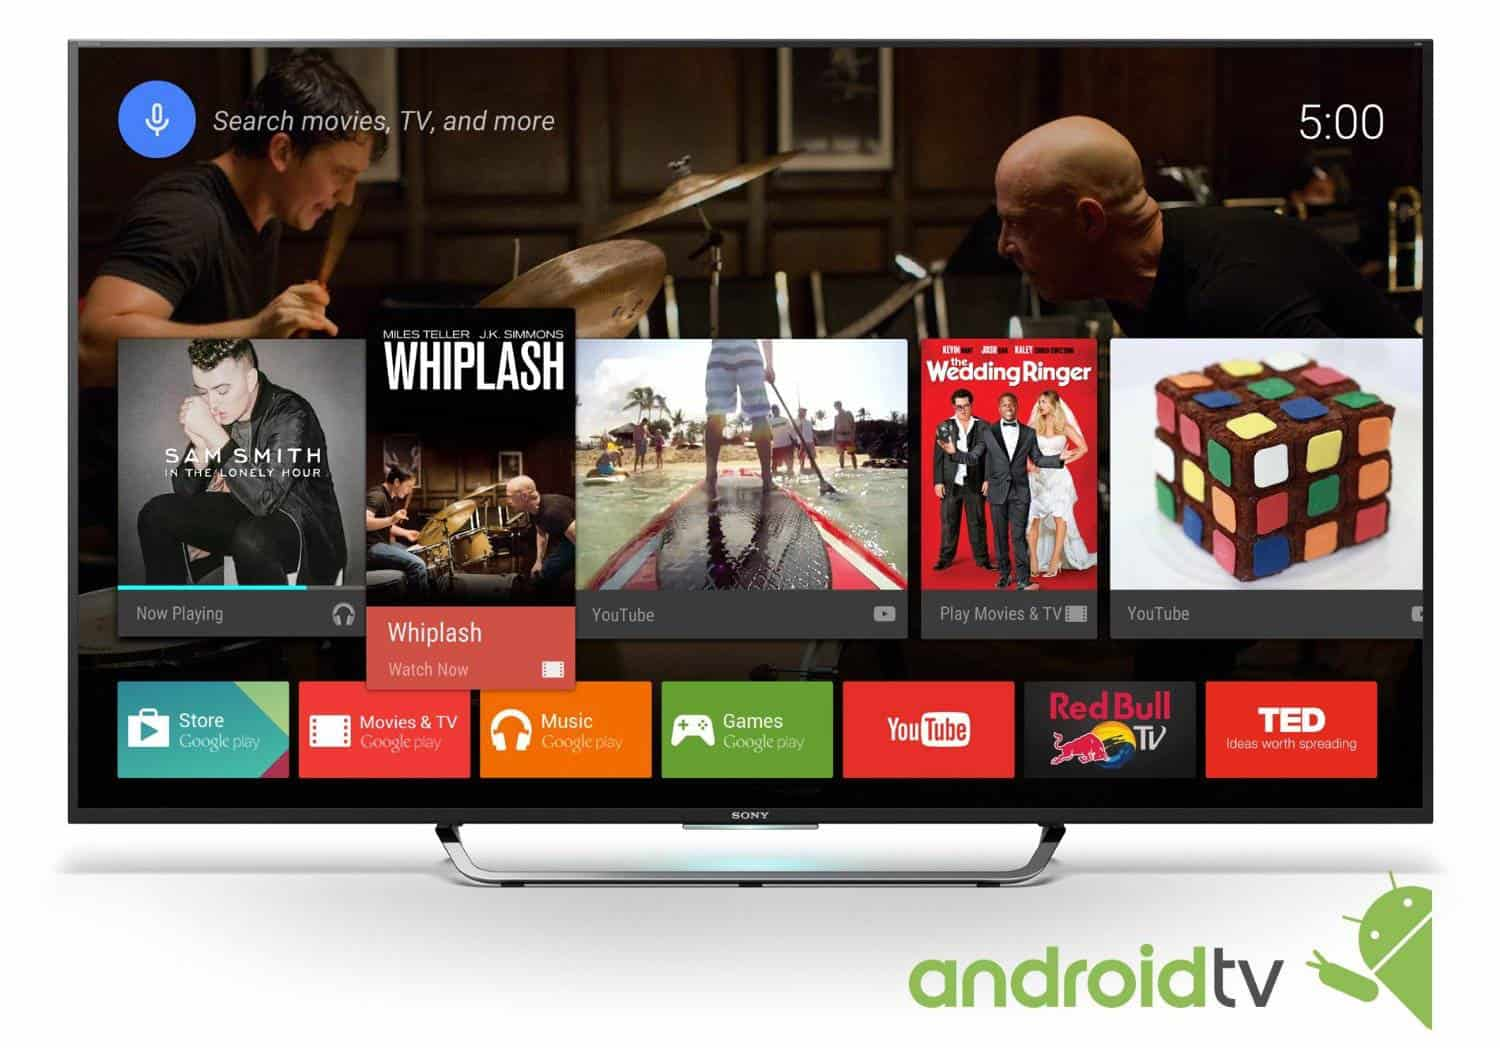 sony-android-tv-4